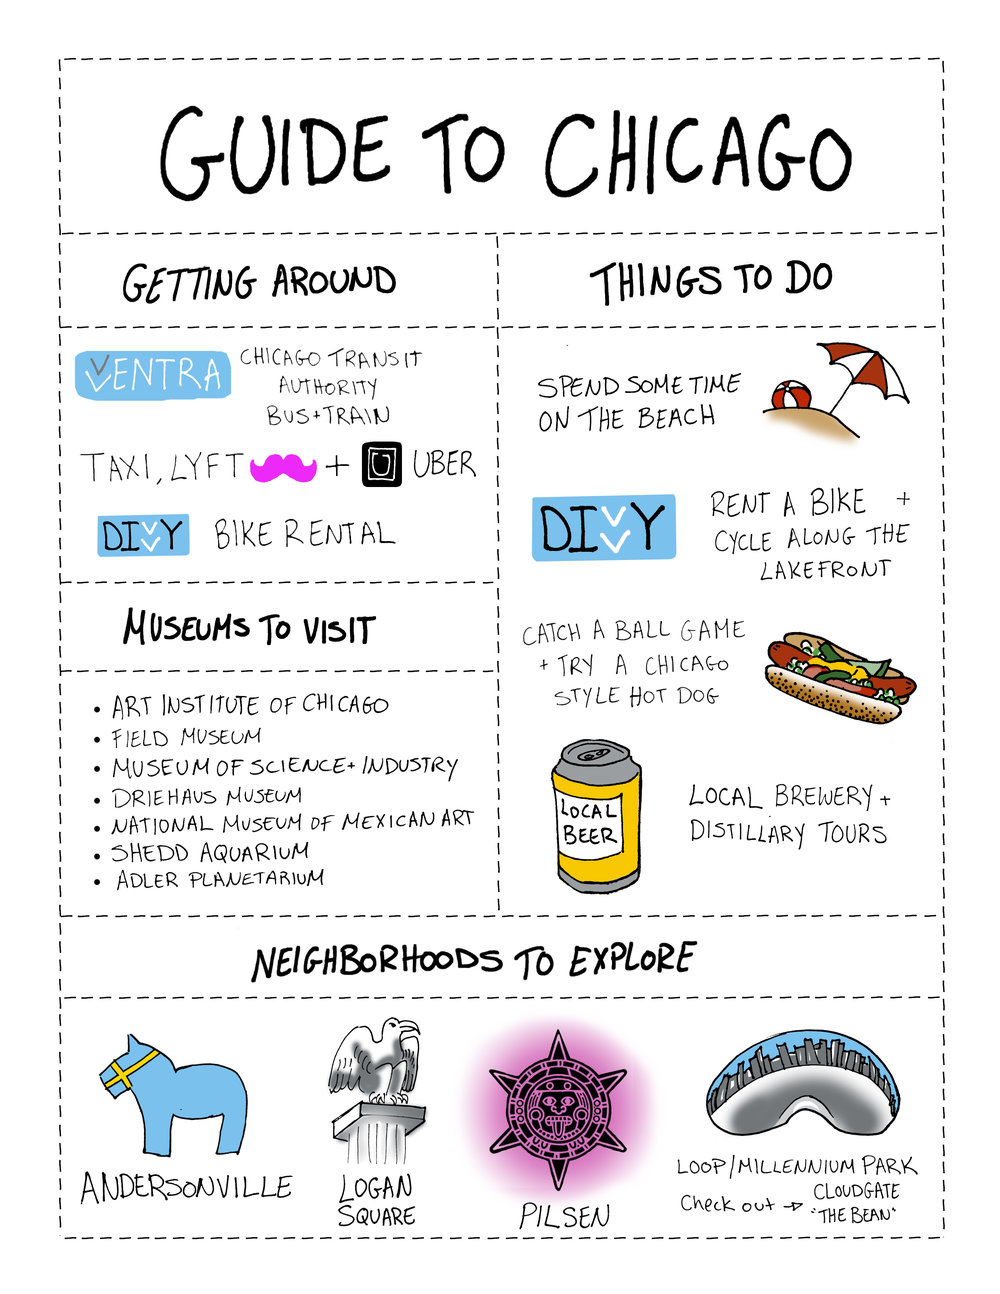 Guide to Chicago